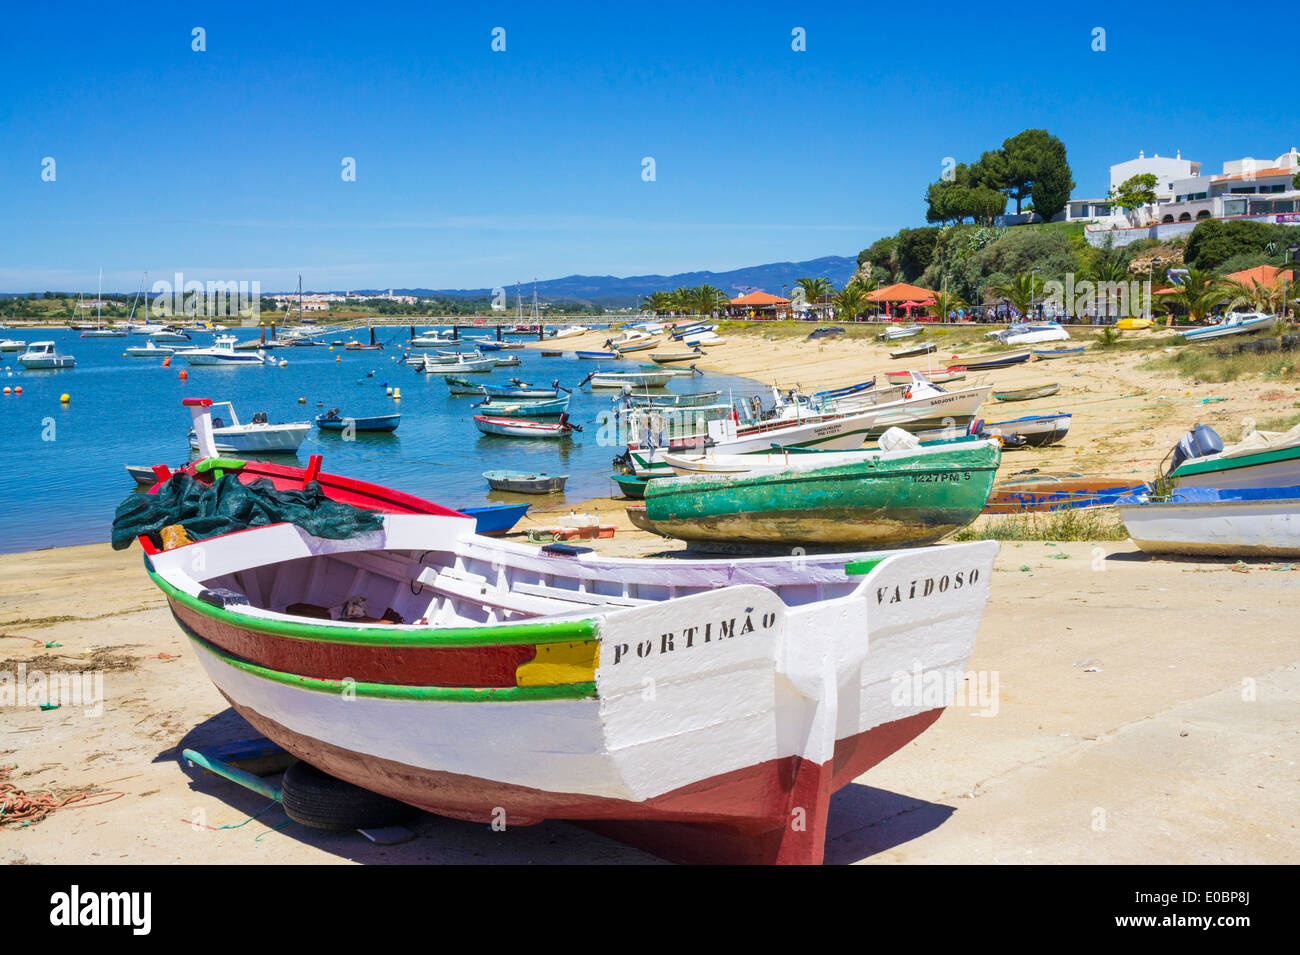 traditional painted fishing boats moored along the seafront in the village of Alvor Algarve Portugal EU Europe - Stock Image